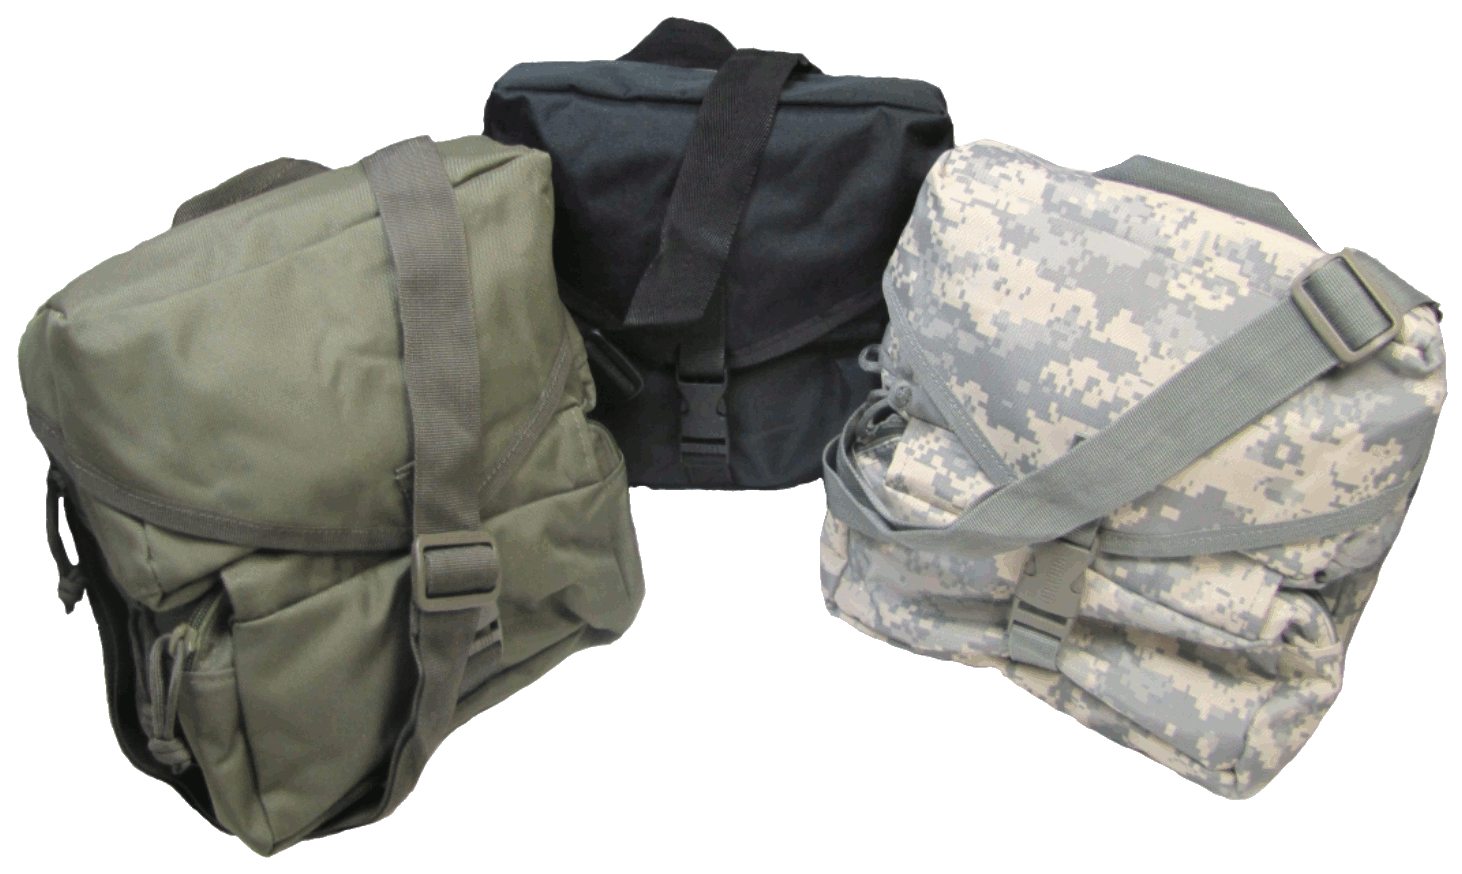 Elite First Aid FA108 - M-3 Medic bag - Security Pro USA